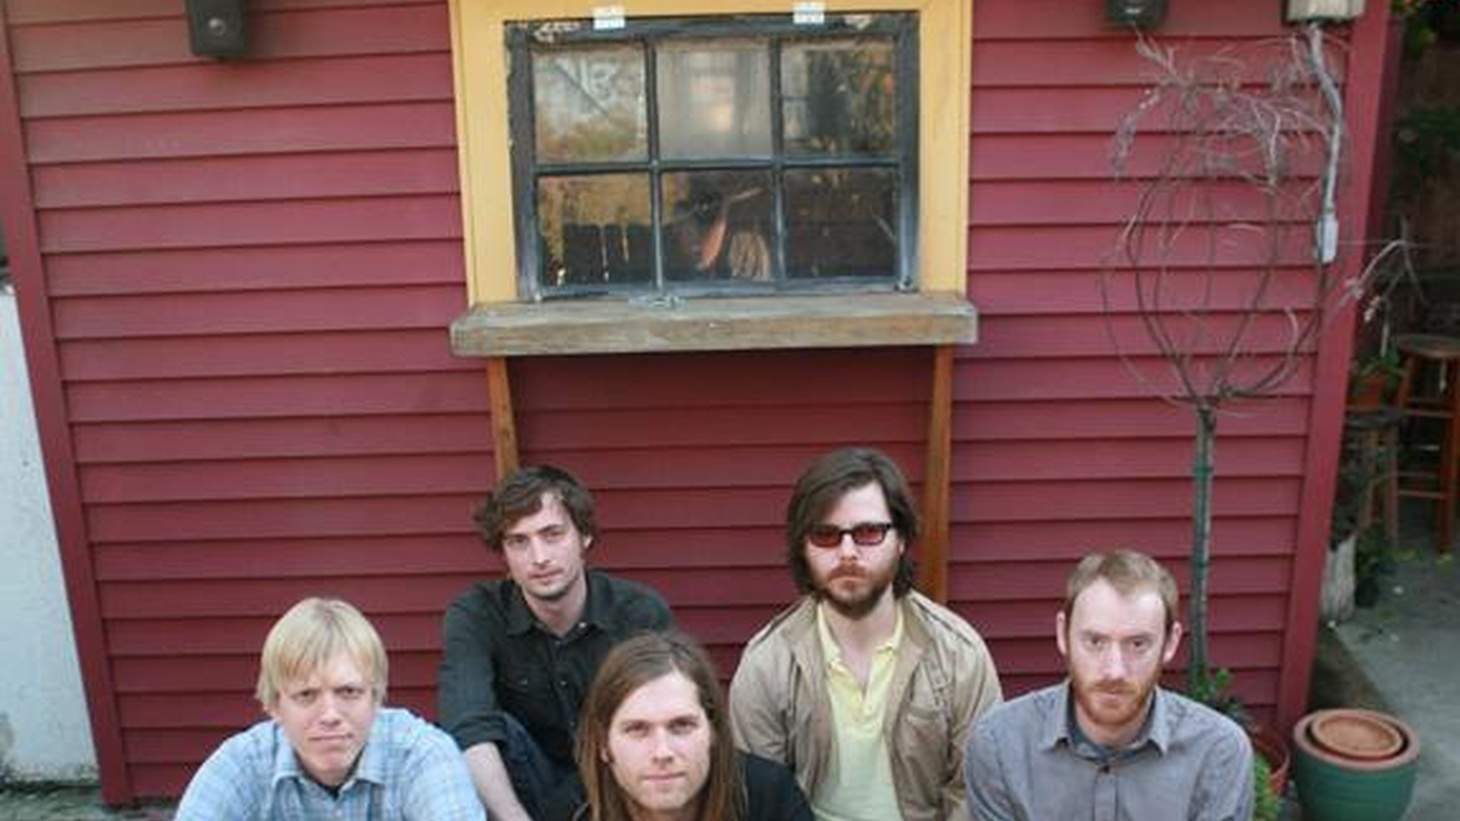 ...the title track from The Ruminant Band.   Eric D. Johnson started Fruit Bats as a four-track project in his bedroom. He was soon coaxed out of shyness while playing as a side-man for a few notable bands: The Shins, Califone and Vetiver...